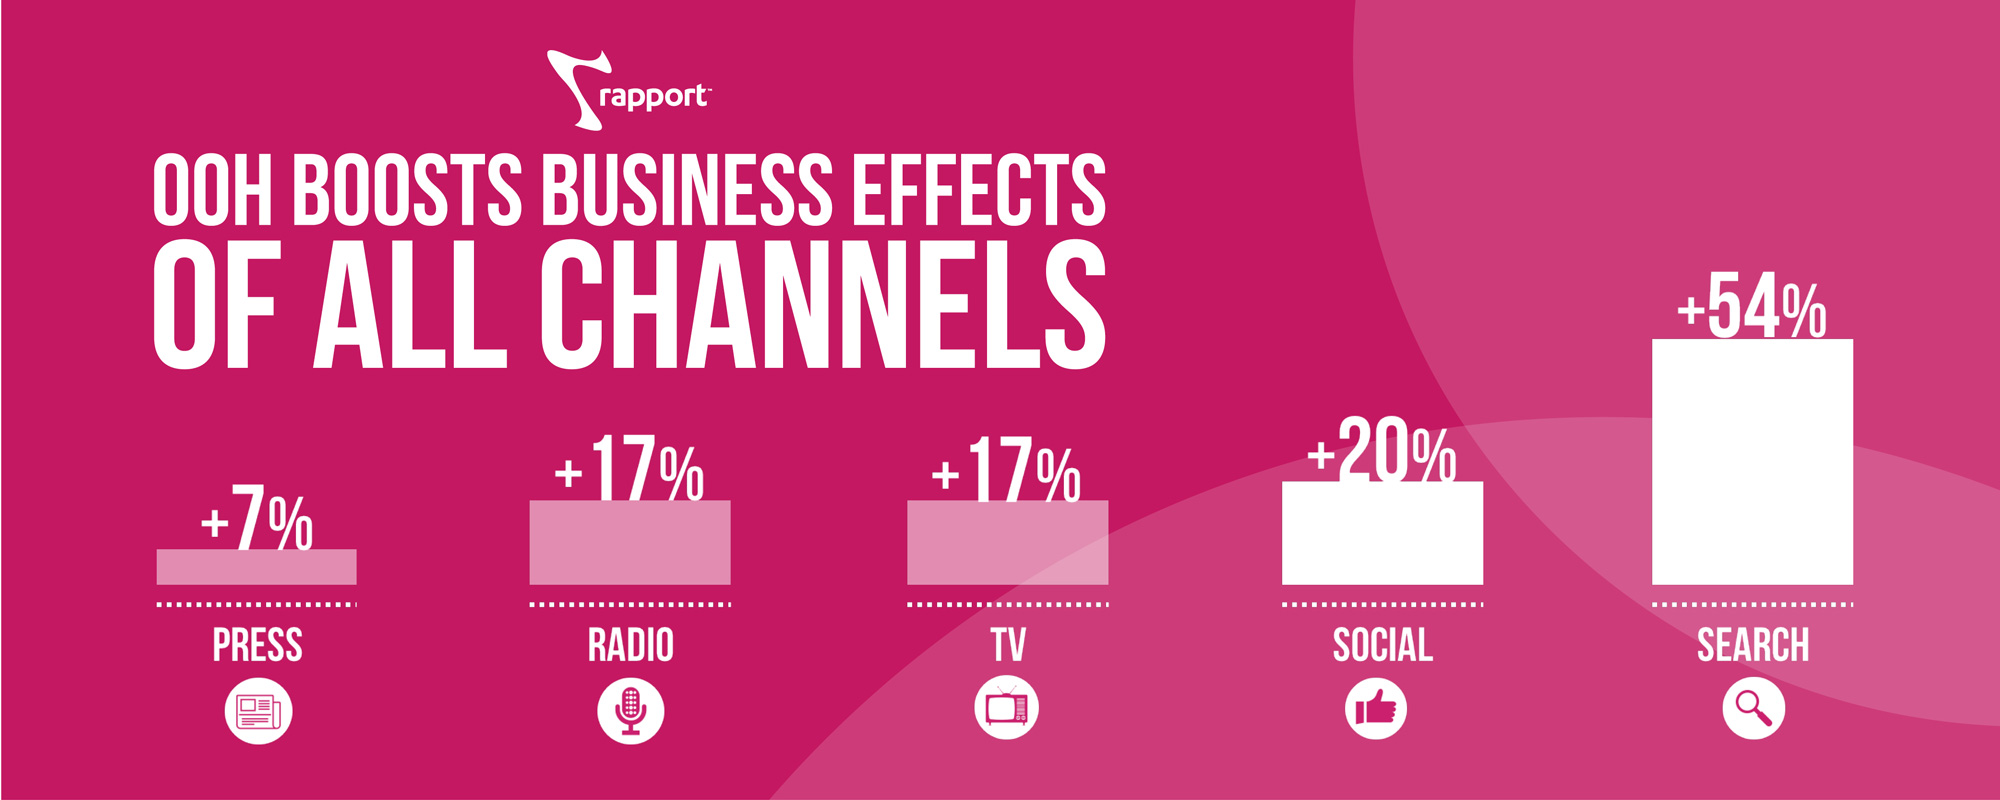 OOH Effectiveness Study by Rapport and IPA Reveals That Outdoor Boosts Market Share by a Third